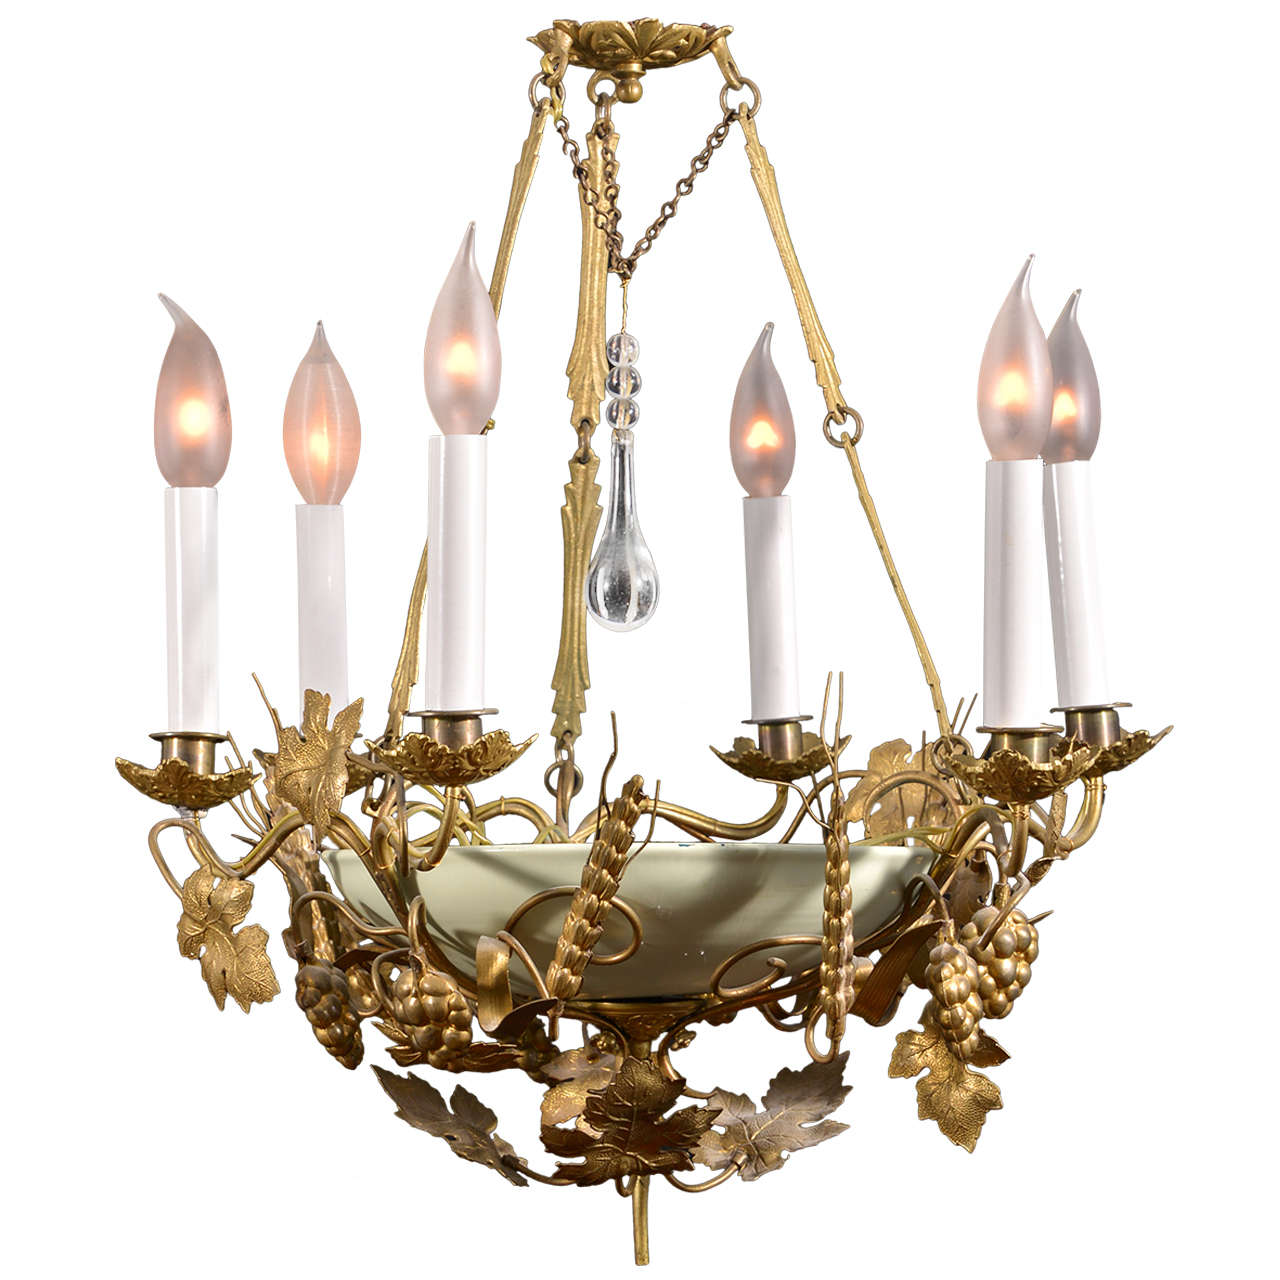 Whimsical steampunk chandelier for sale at 1stdibs whimsical six light chandelier mozeypictures Image collections